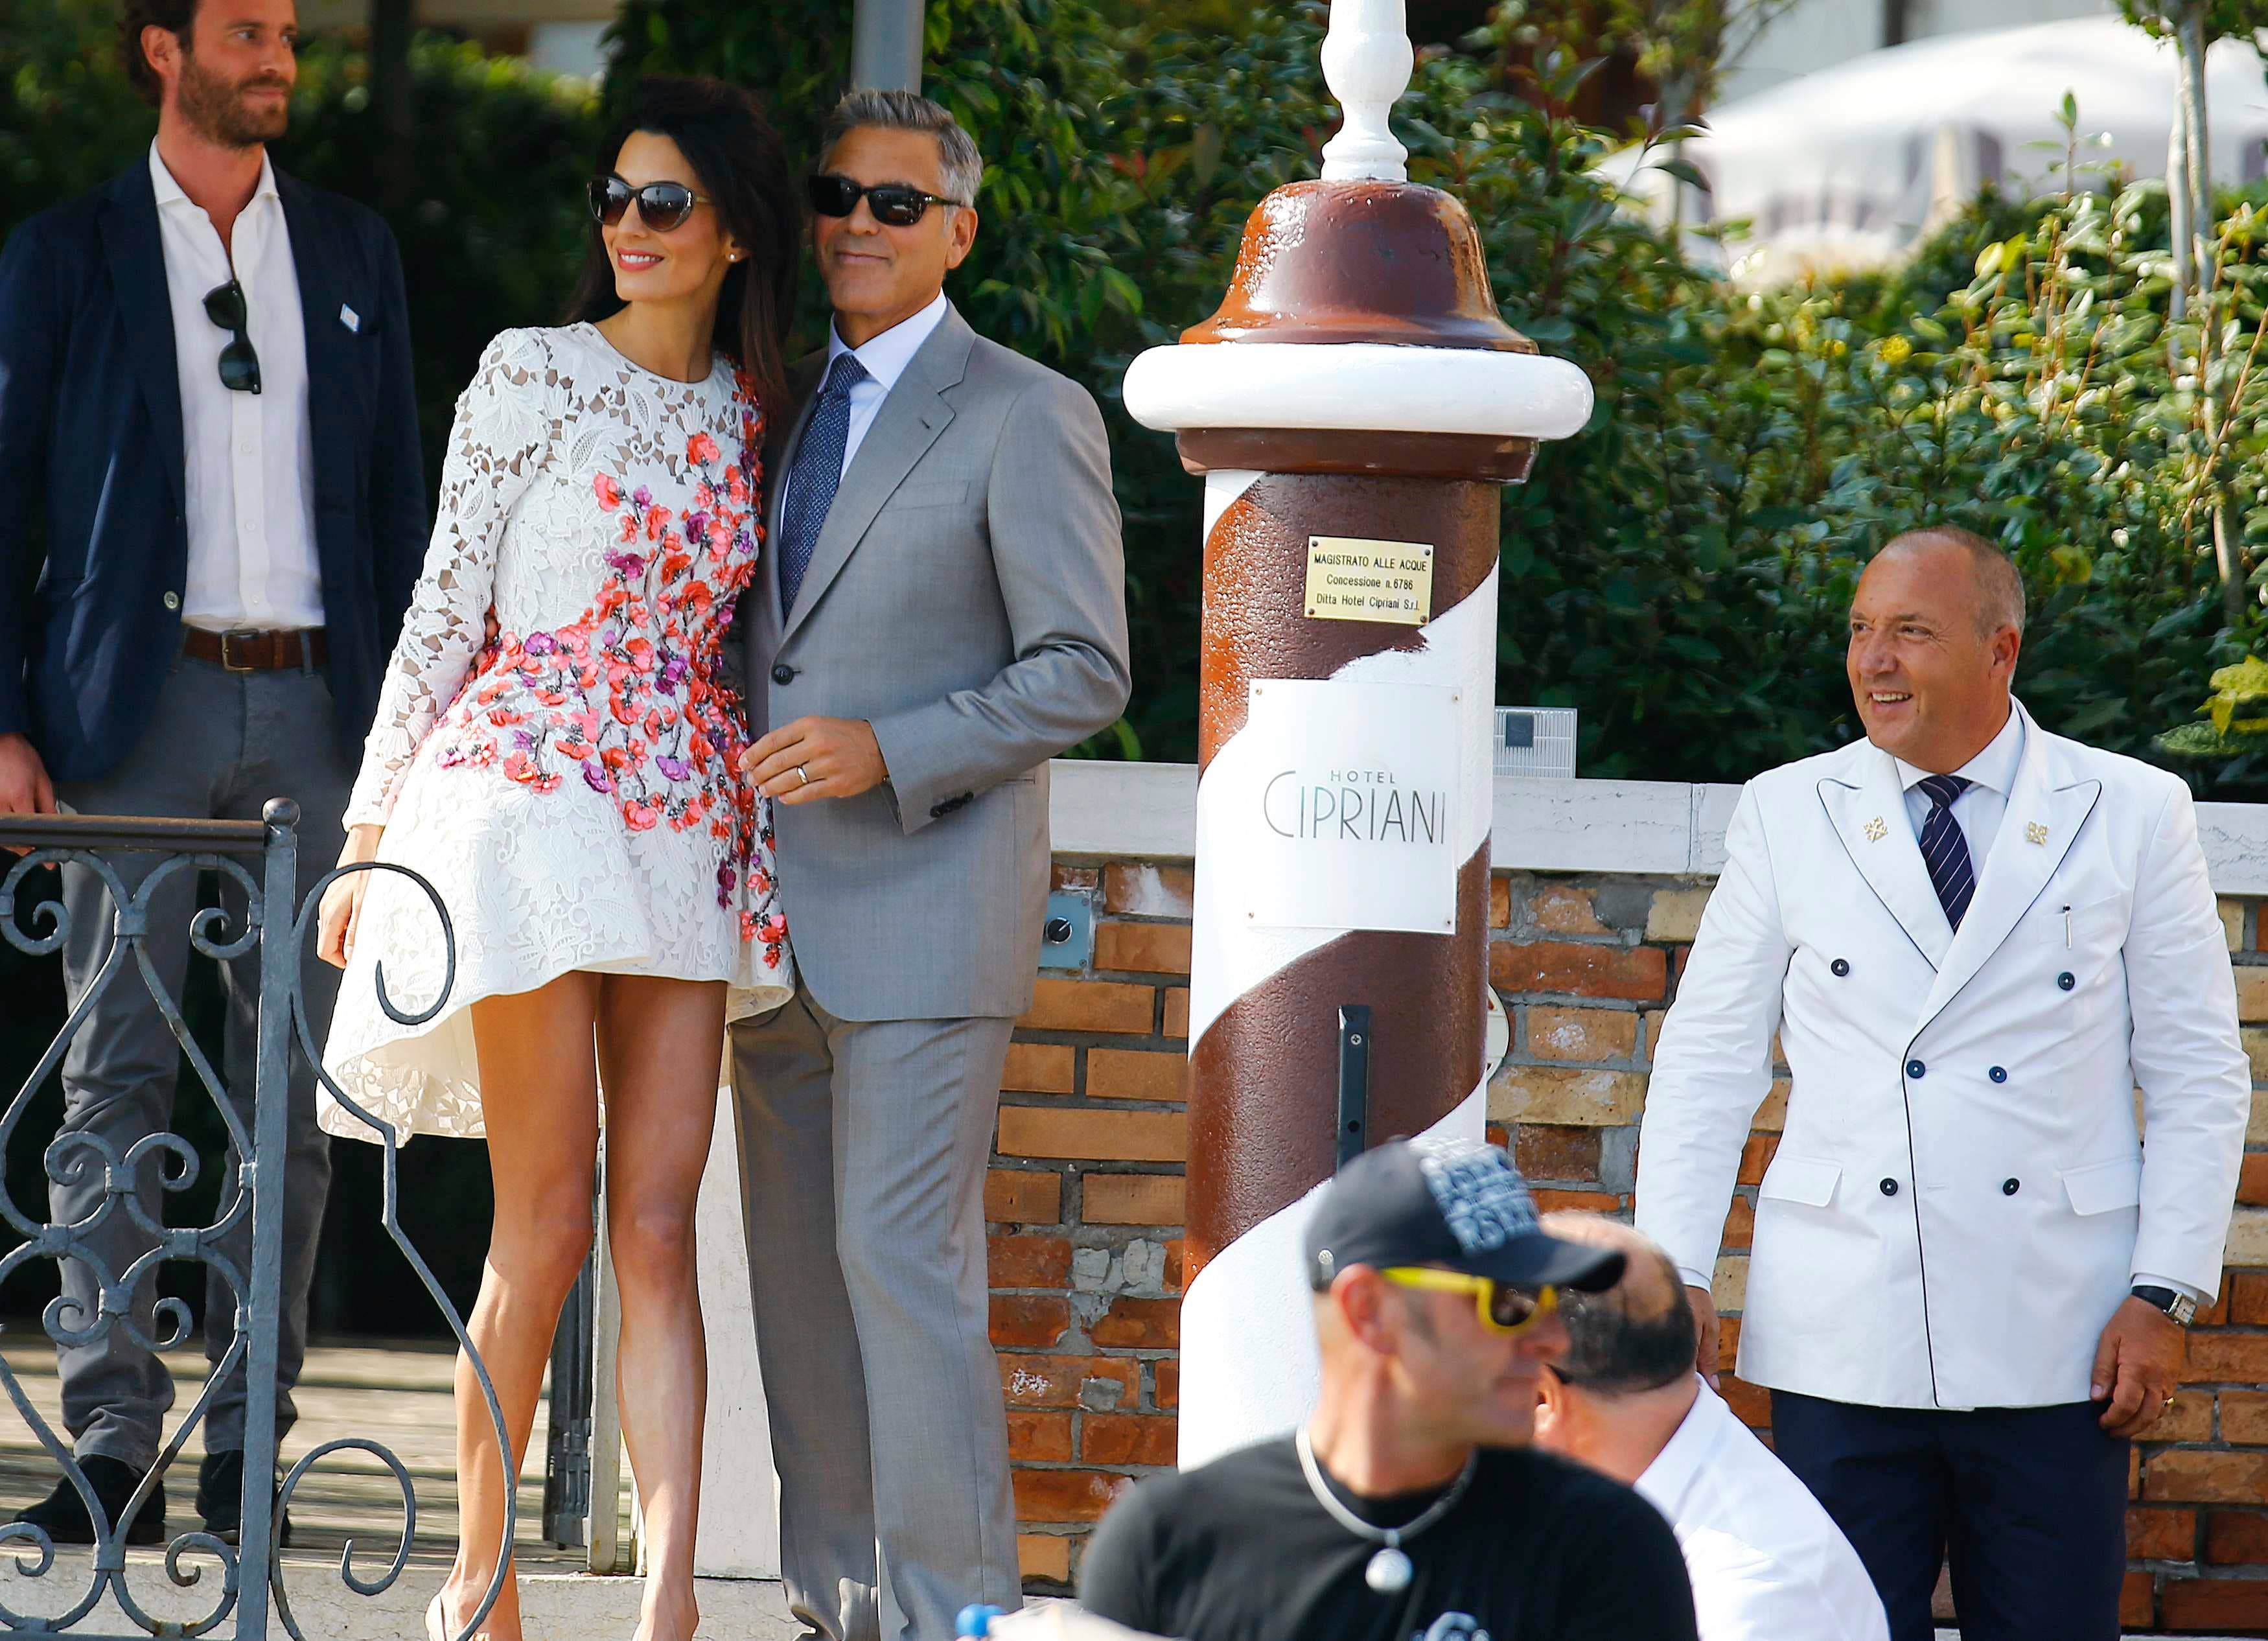 U.S. actor George Clooney (3rd L) and his wife Amal Alamuddin arrive at the Cipriani hotel in Venice September 28, 2014. (Reuters)